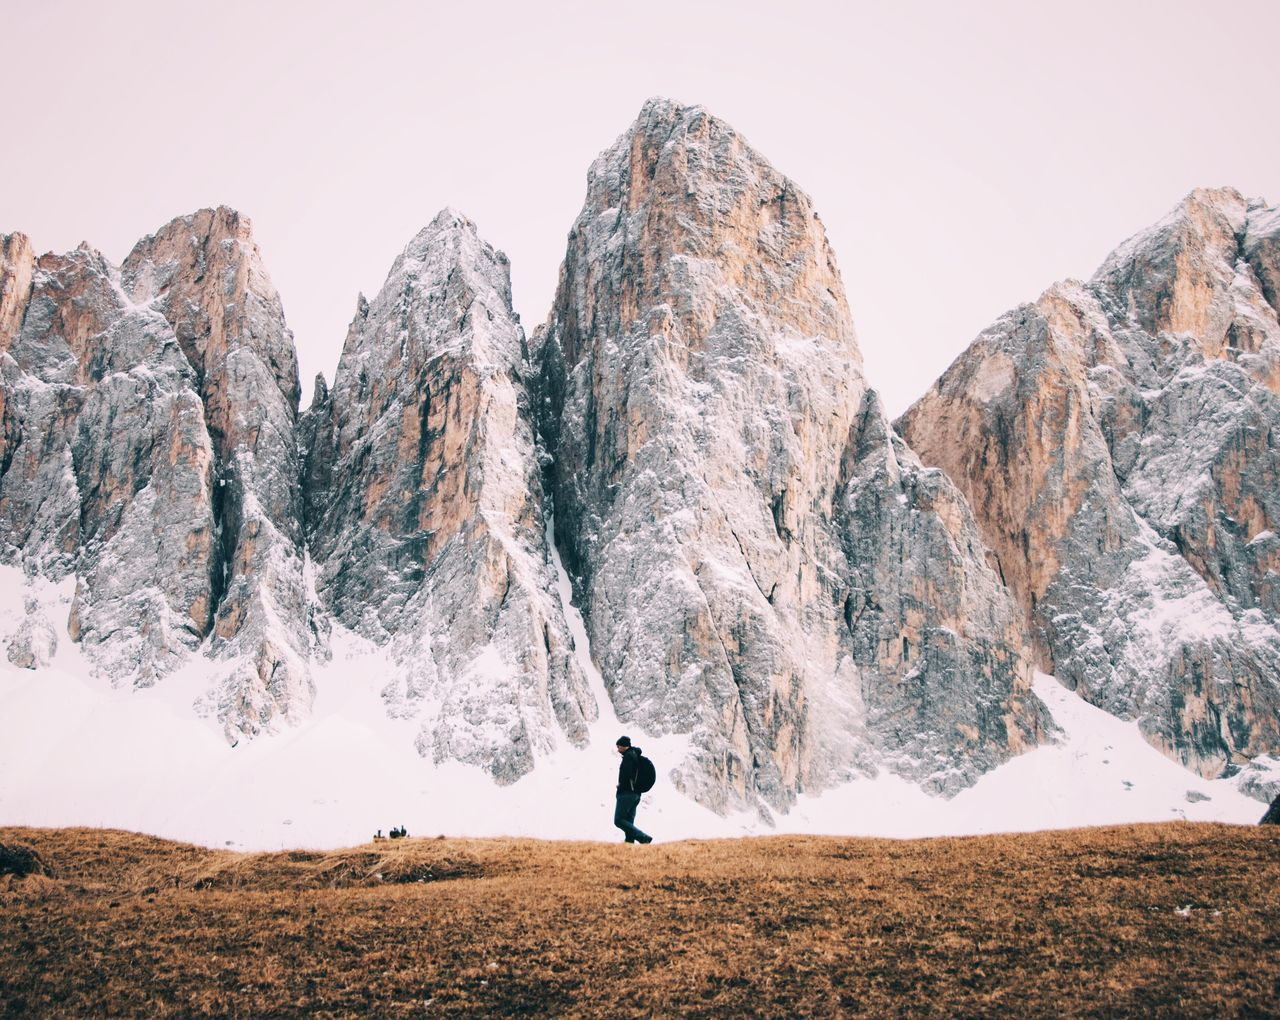 The Great Outdoors - 2017 EyeEm Awards Mountain One Person Adventure Mountain Range Scenics Snow Landscape Nature Hiking Dolomites, Italy Alps Giant Outdoors Rocks Day Travel Destinations